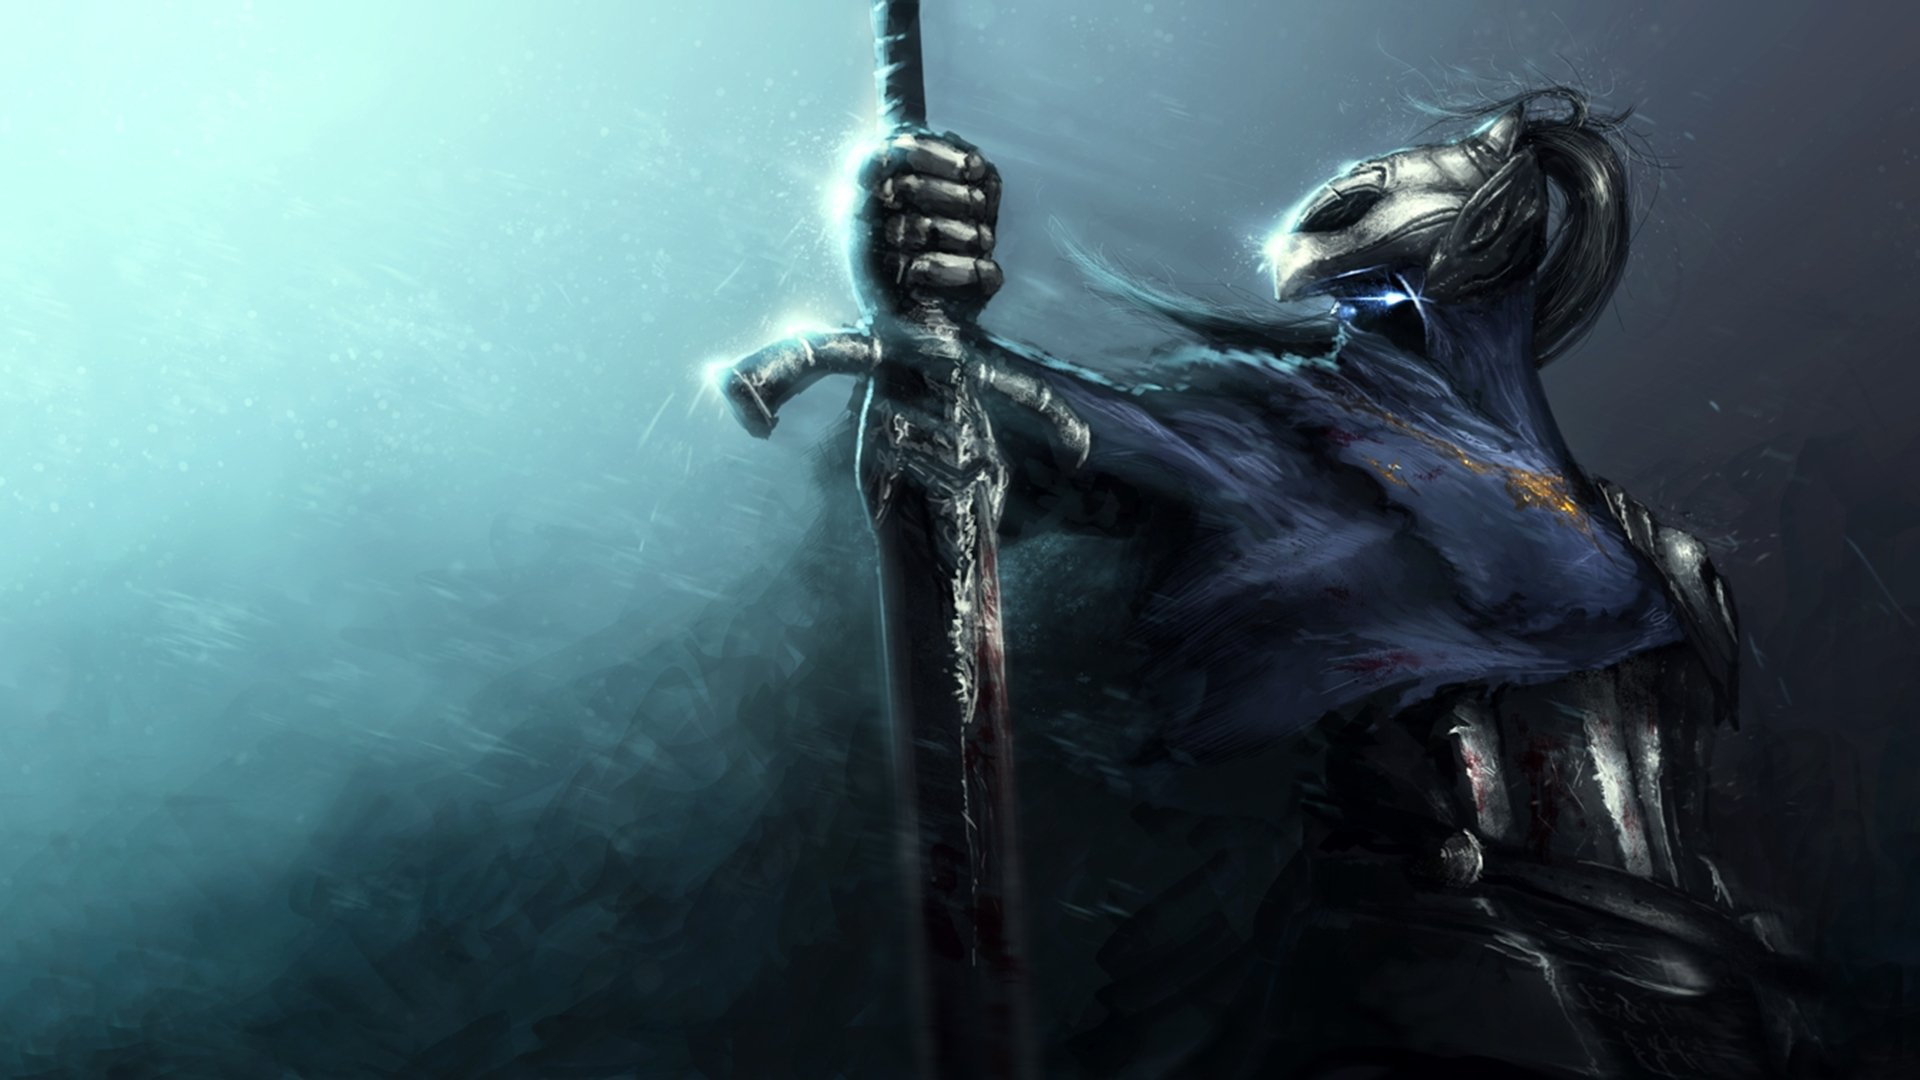 23 Artorias Dark Souls Hd Wallpapers Background Images